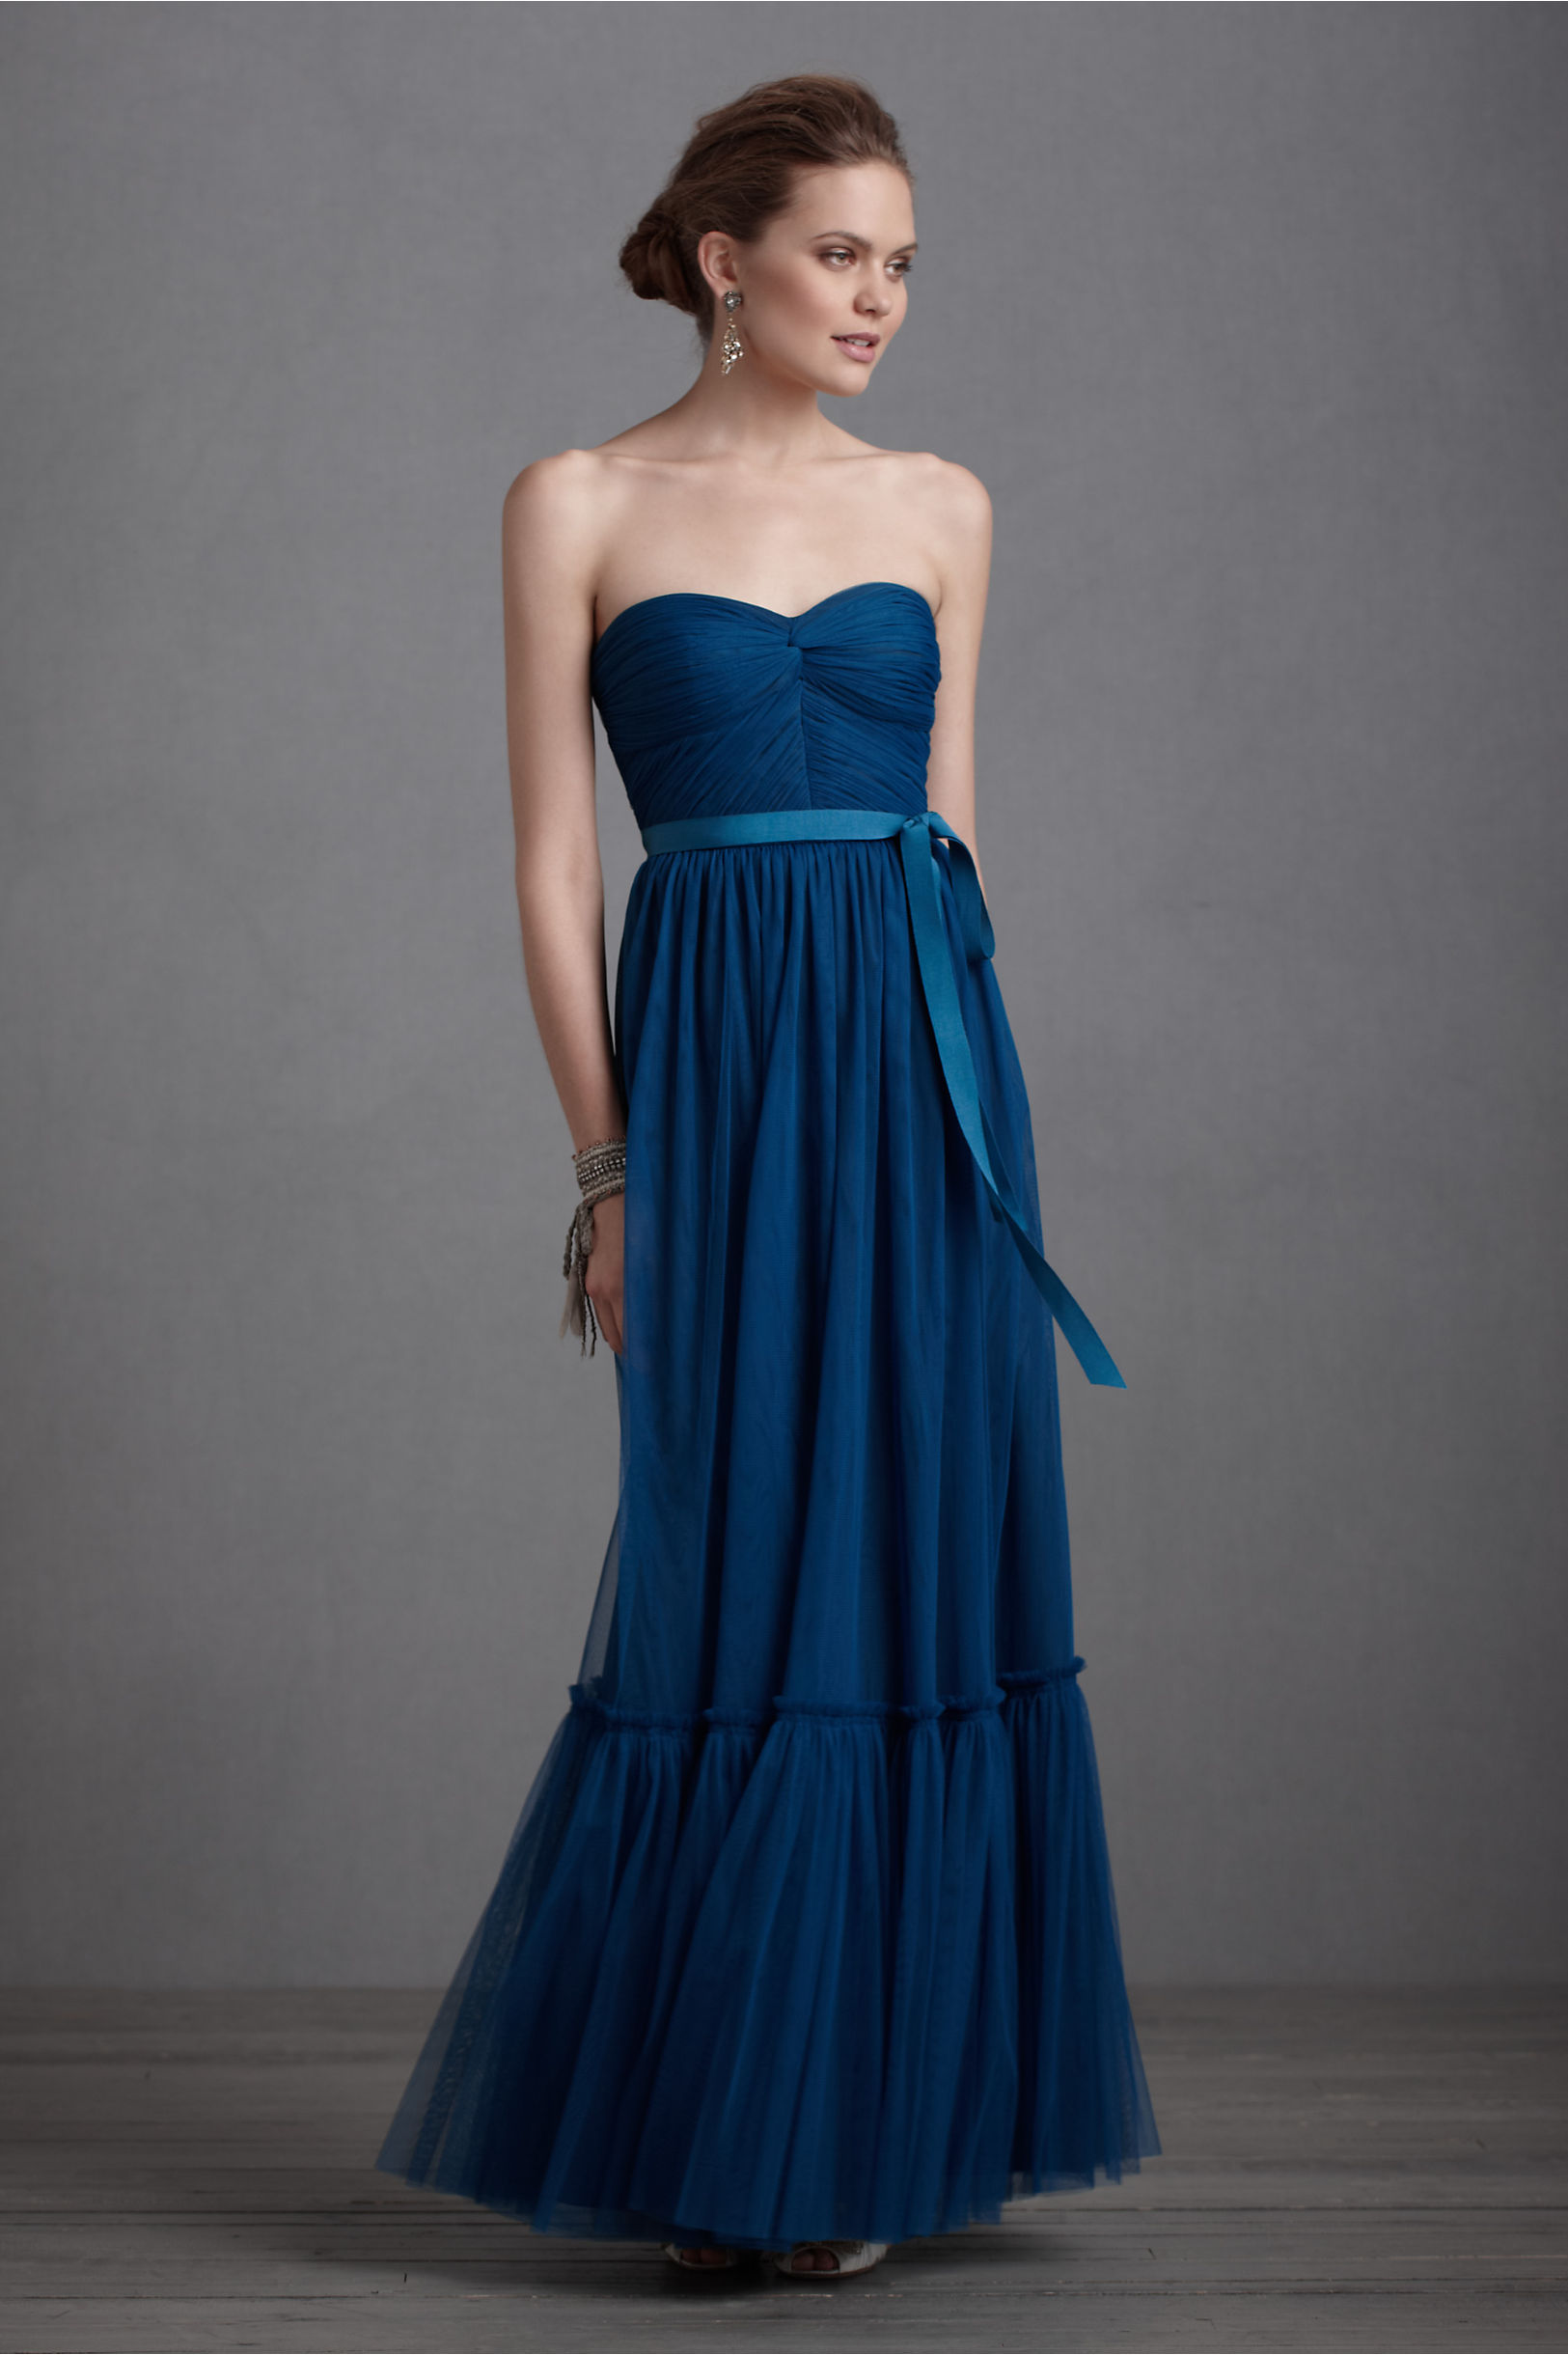 Niceties Dress in Sale | BHLDN